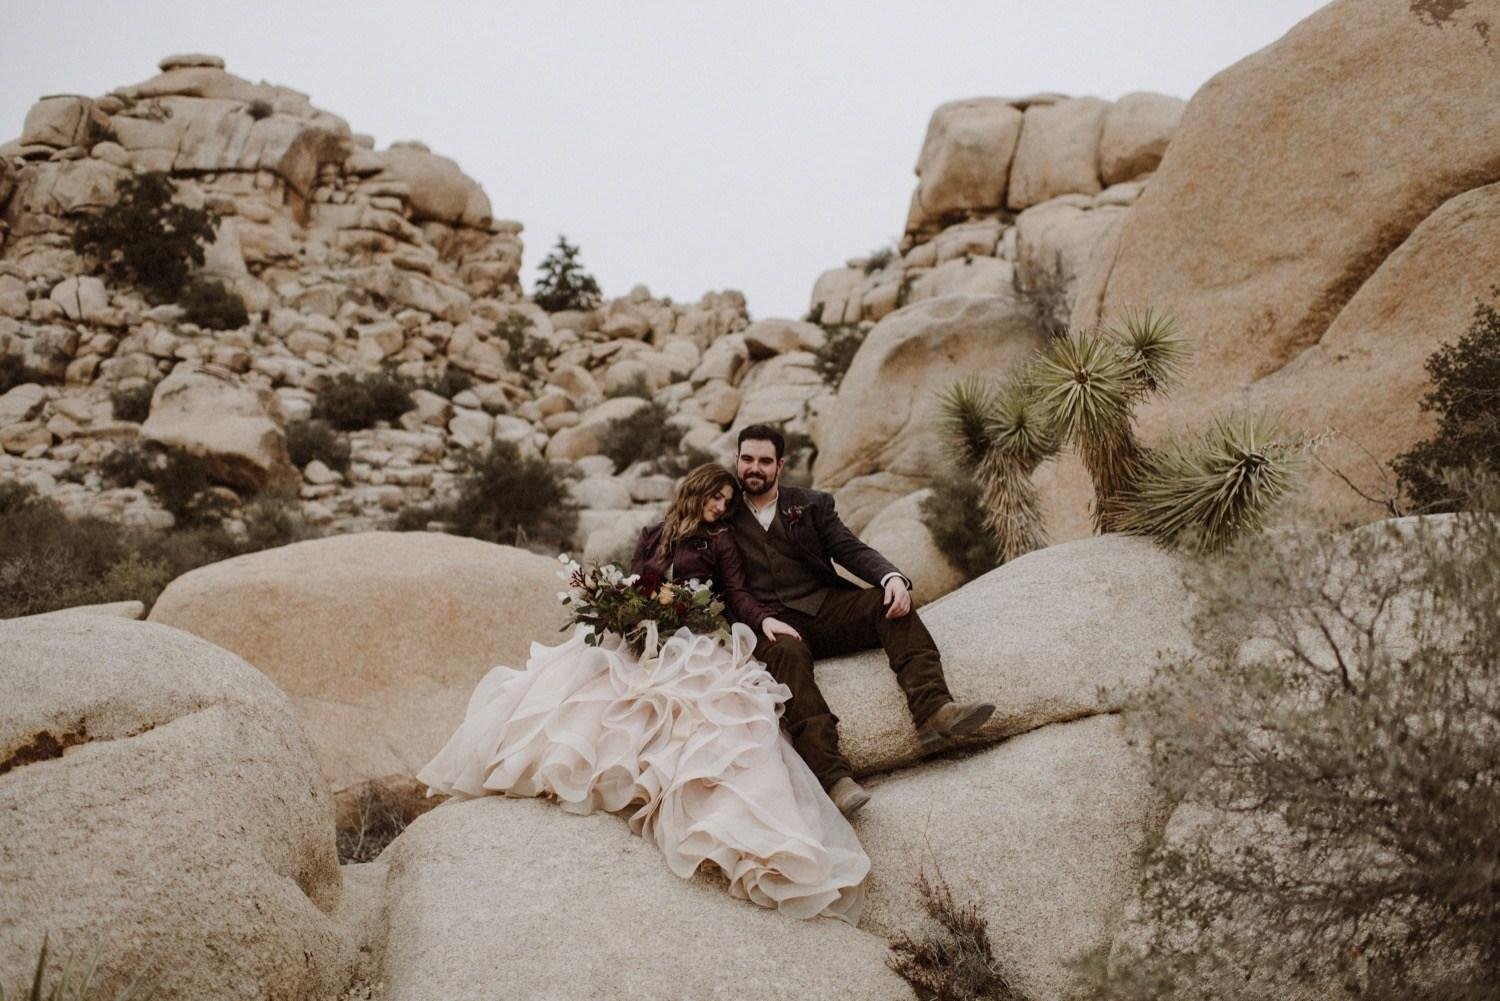 Lovely couple's pose captured by Mitch Colagrossi